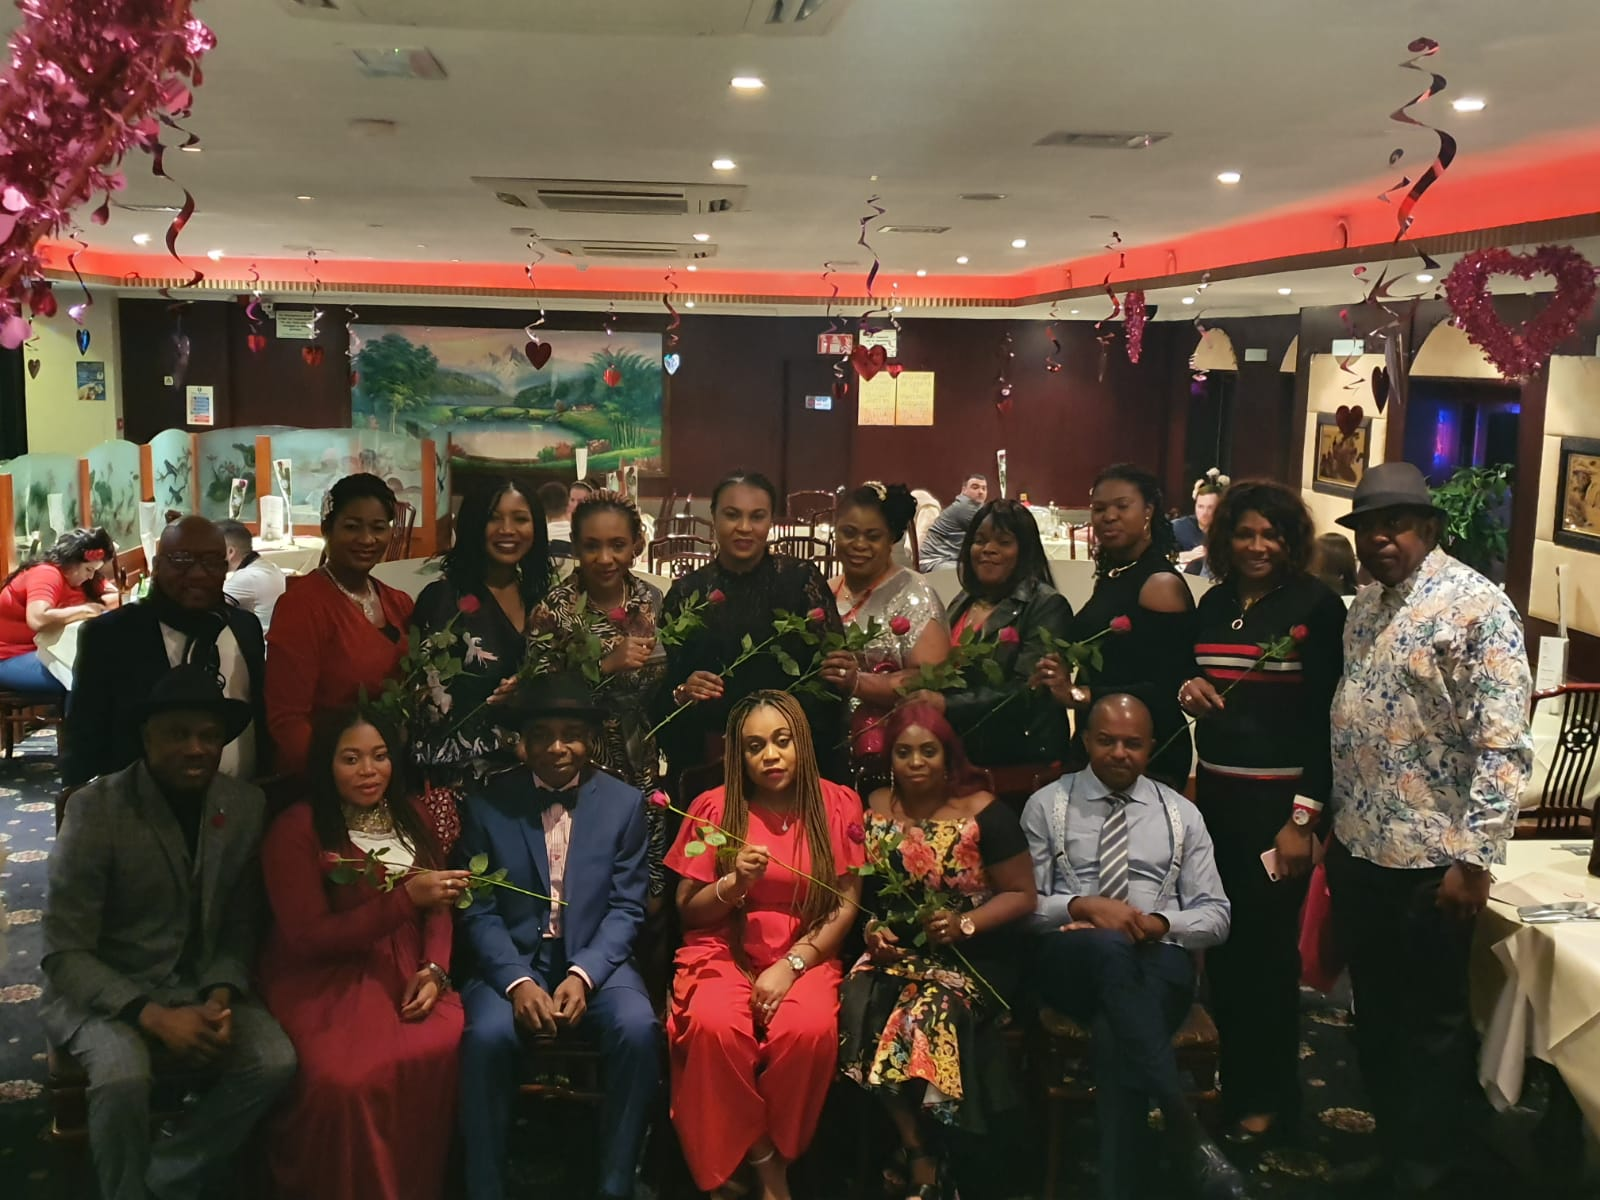 St Valentine's Day in Dublin: The African Chaplaincy Connection